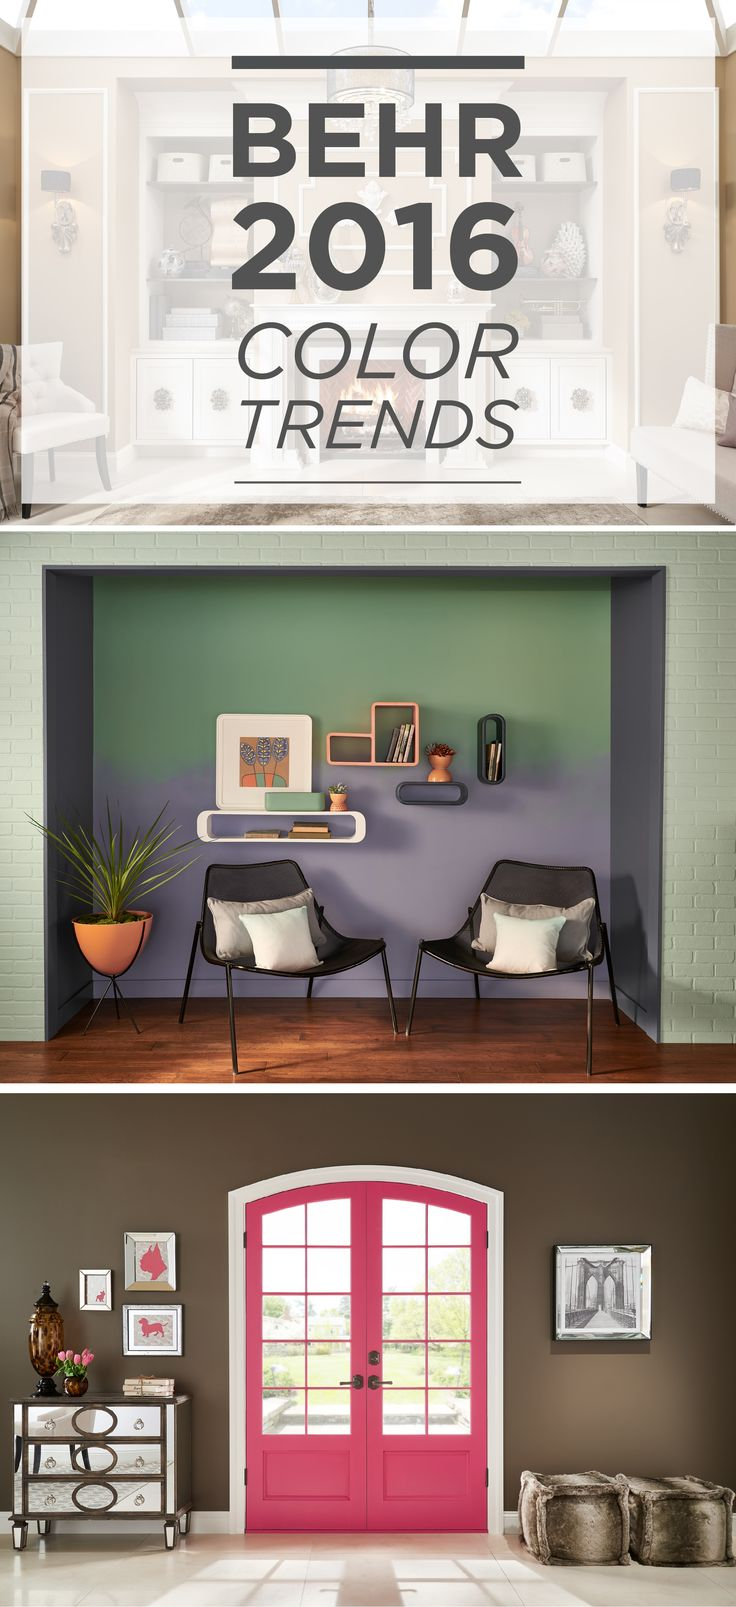 what is the best color paint trends also fabulous for walls in living room images different blue 104 best images about behr 2016 color trends on 14131